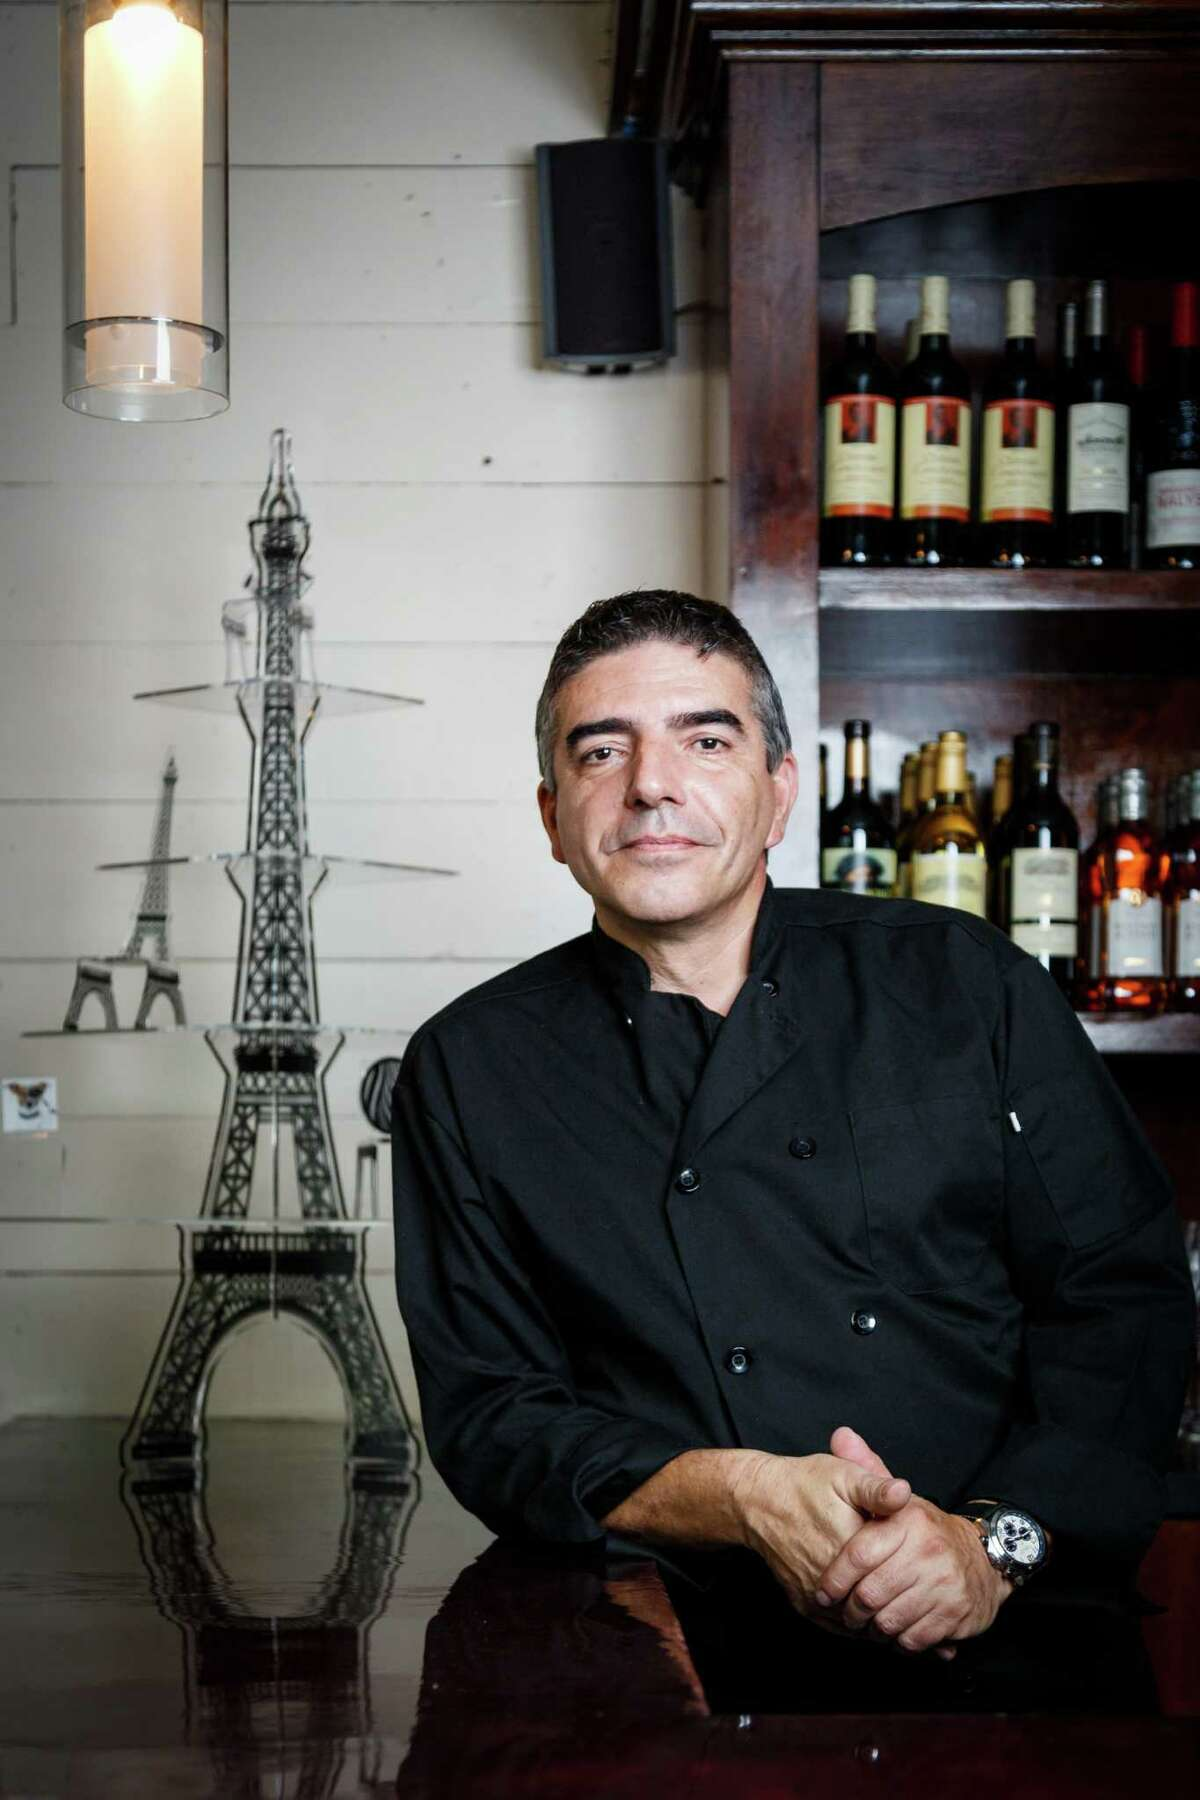 Philippe Harel's Salé-Sucré restaurant in the Heights serves French bistro fare and pastry creations.